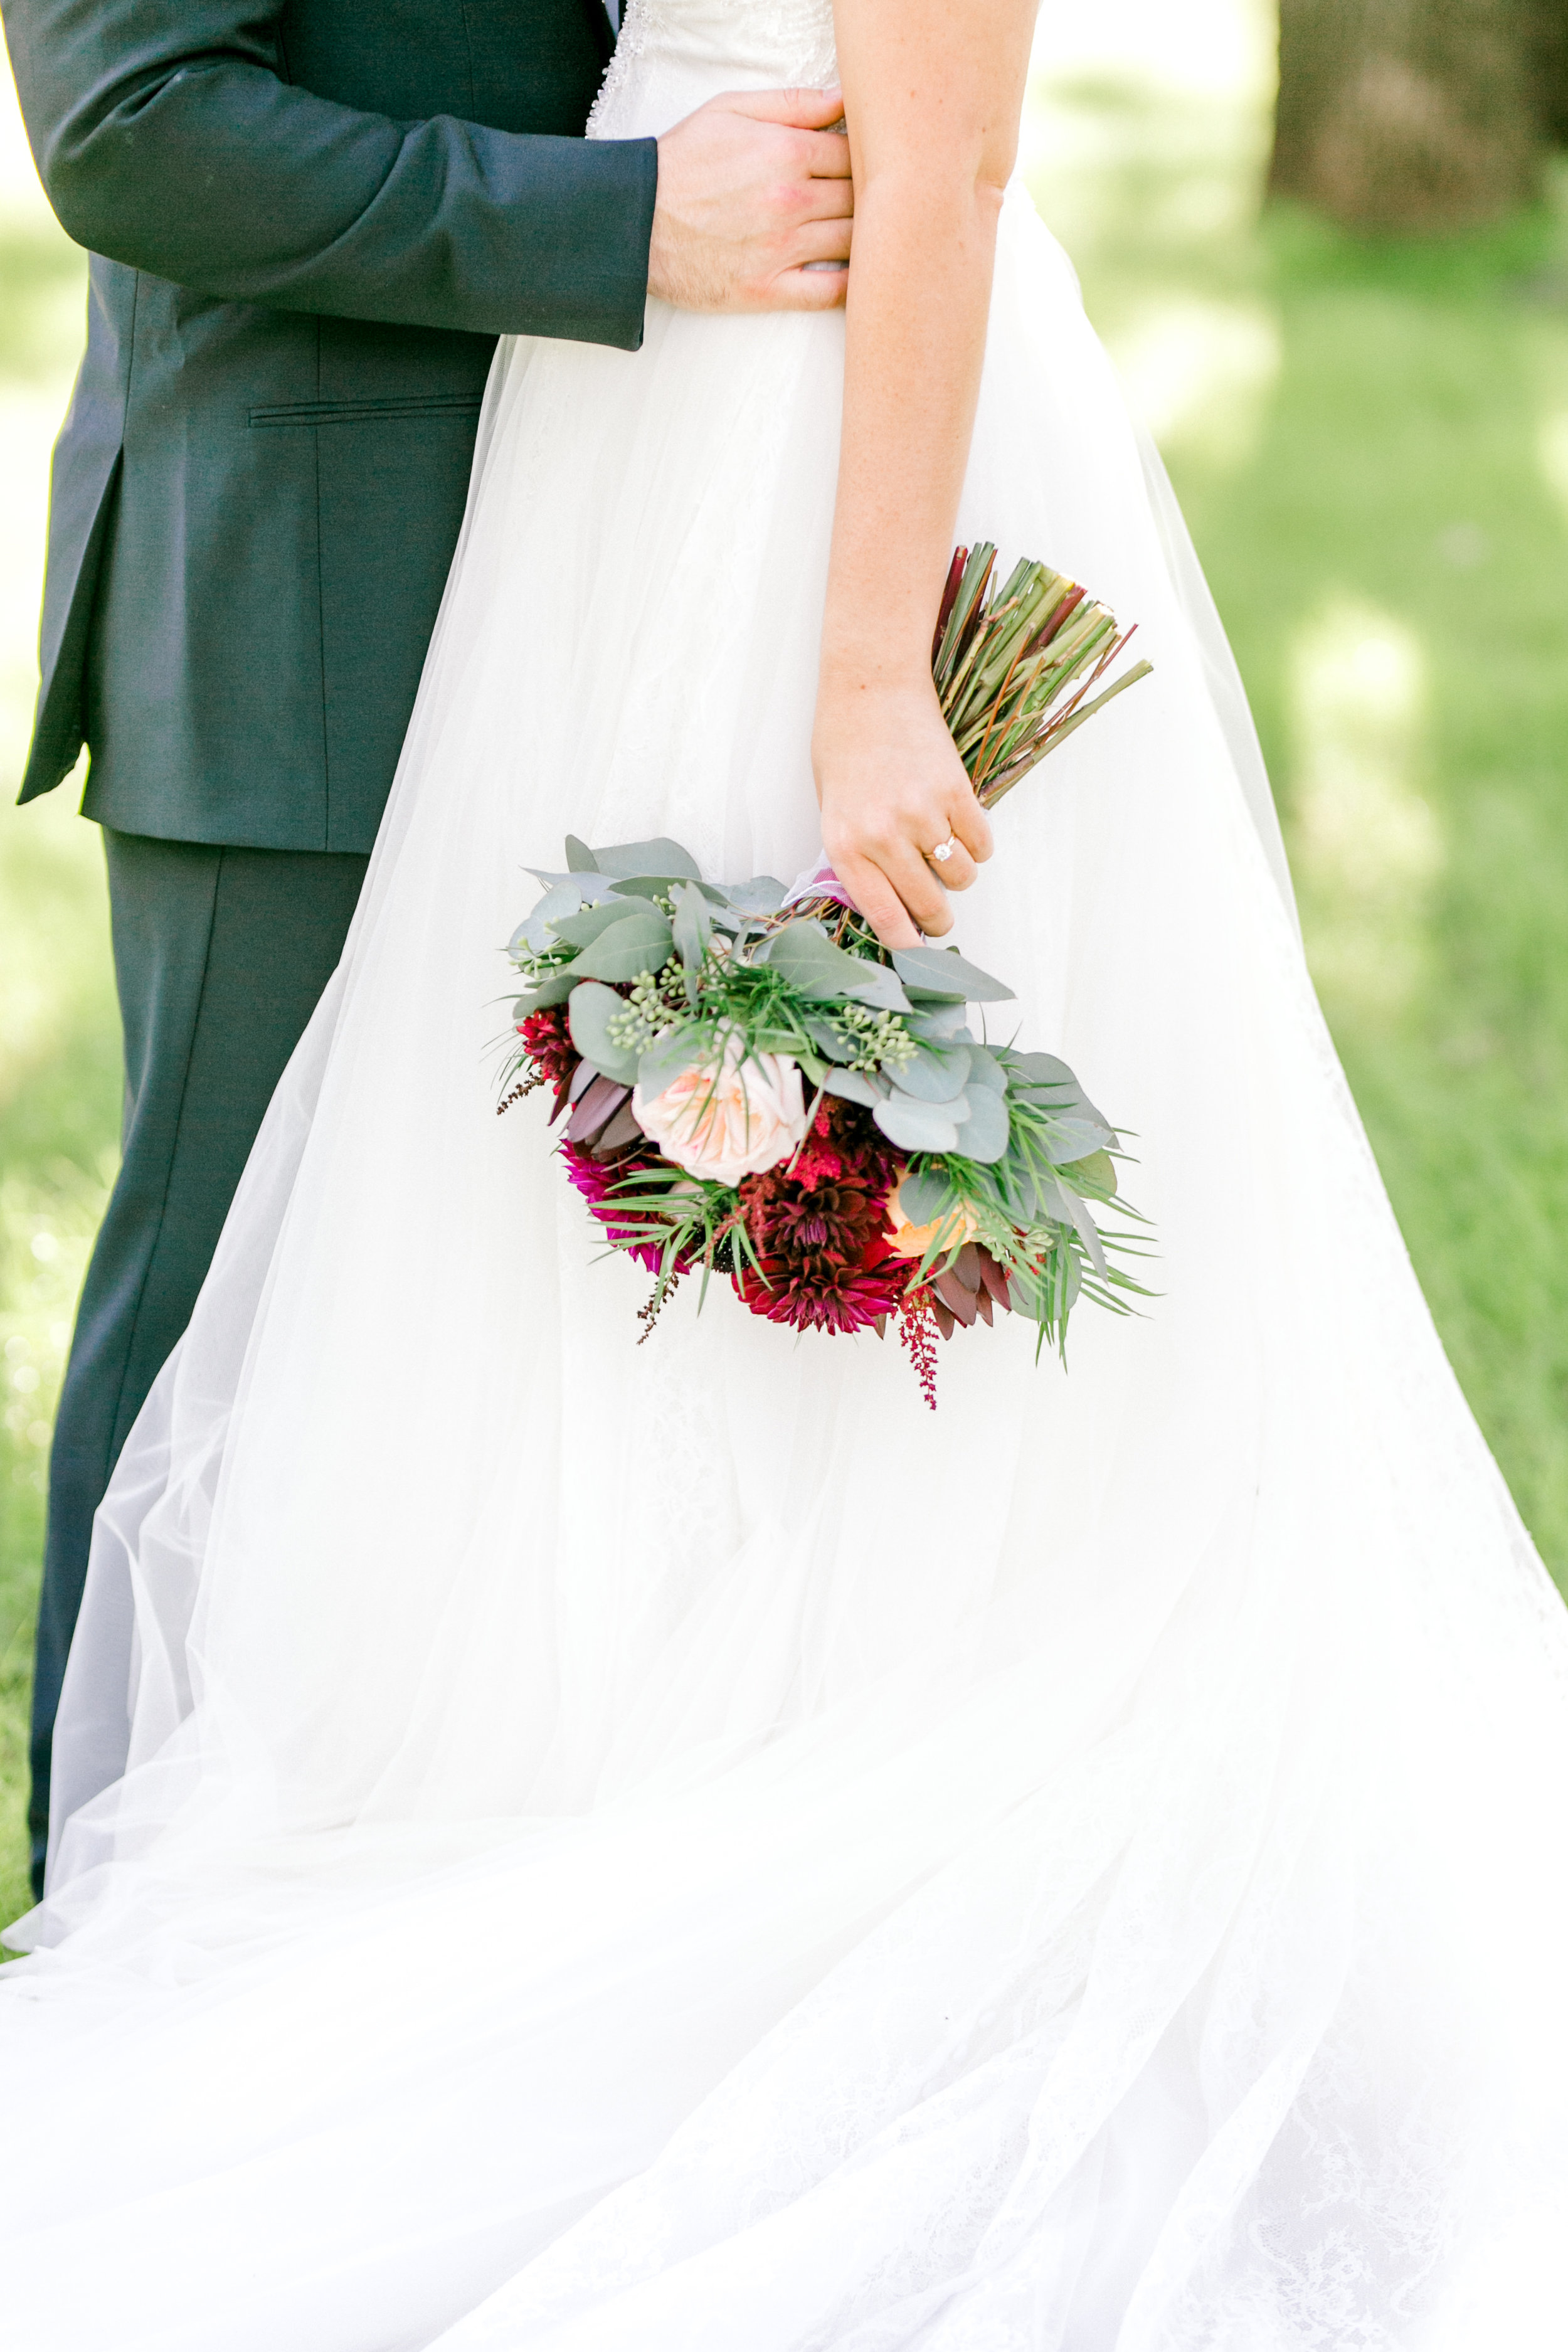 Natalie-and-Trent-Wedding-Day-THE-SPRINGS-EVENT-VENUE-Norman-Oklahoma-by-Emily-Nicole-Photo-285.jpg